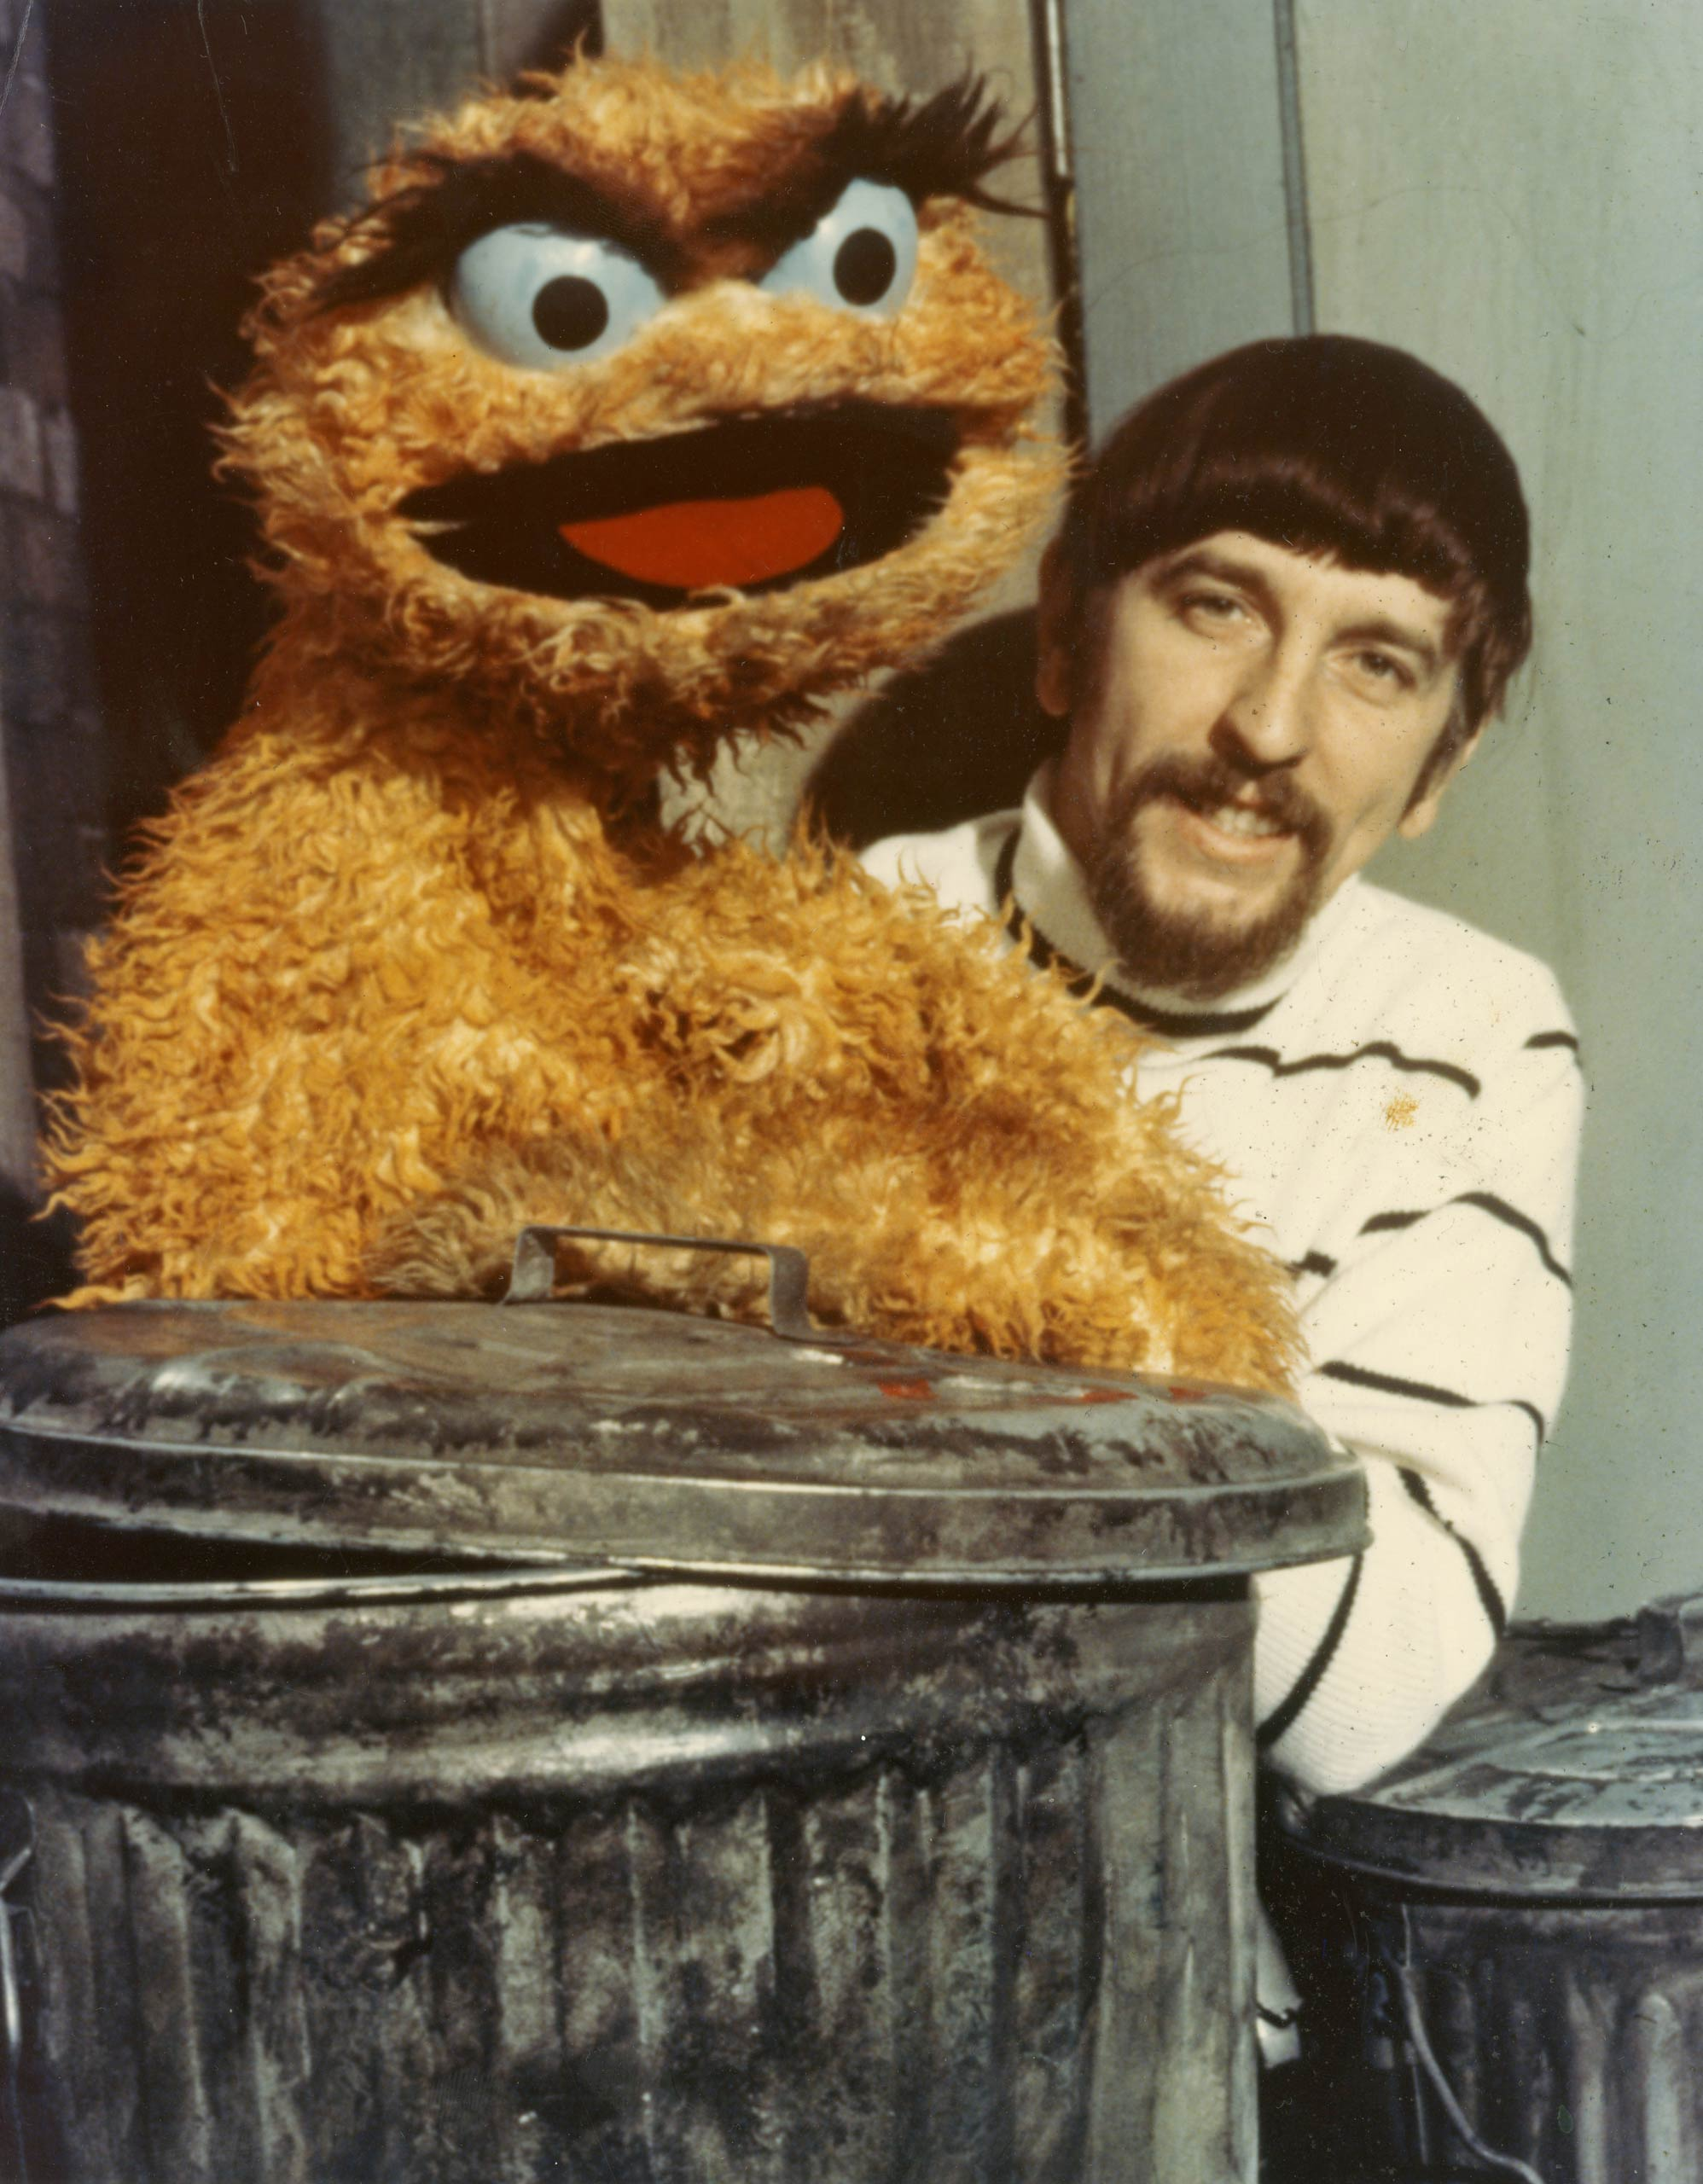 In the first year of <i>Sesame Street</i>, Oscar the Grouch was orange.